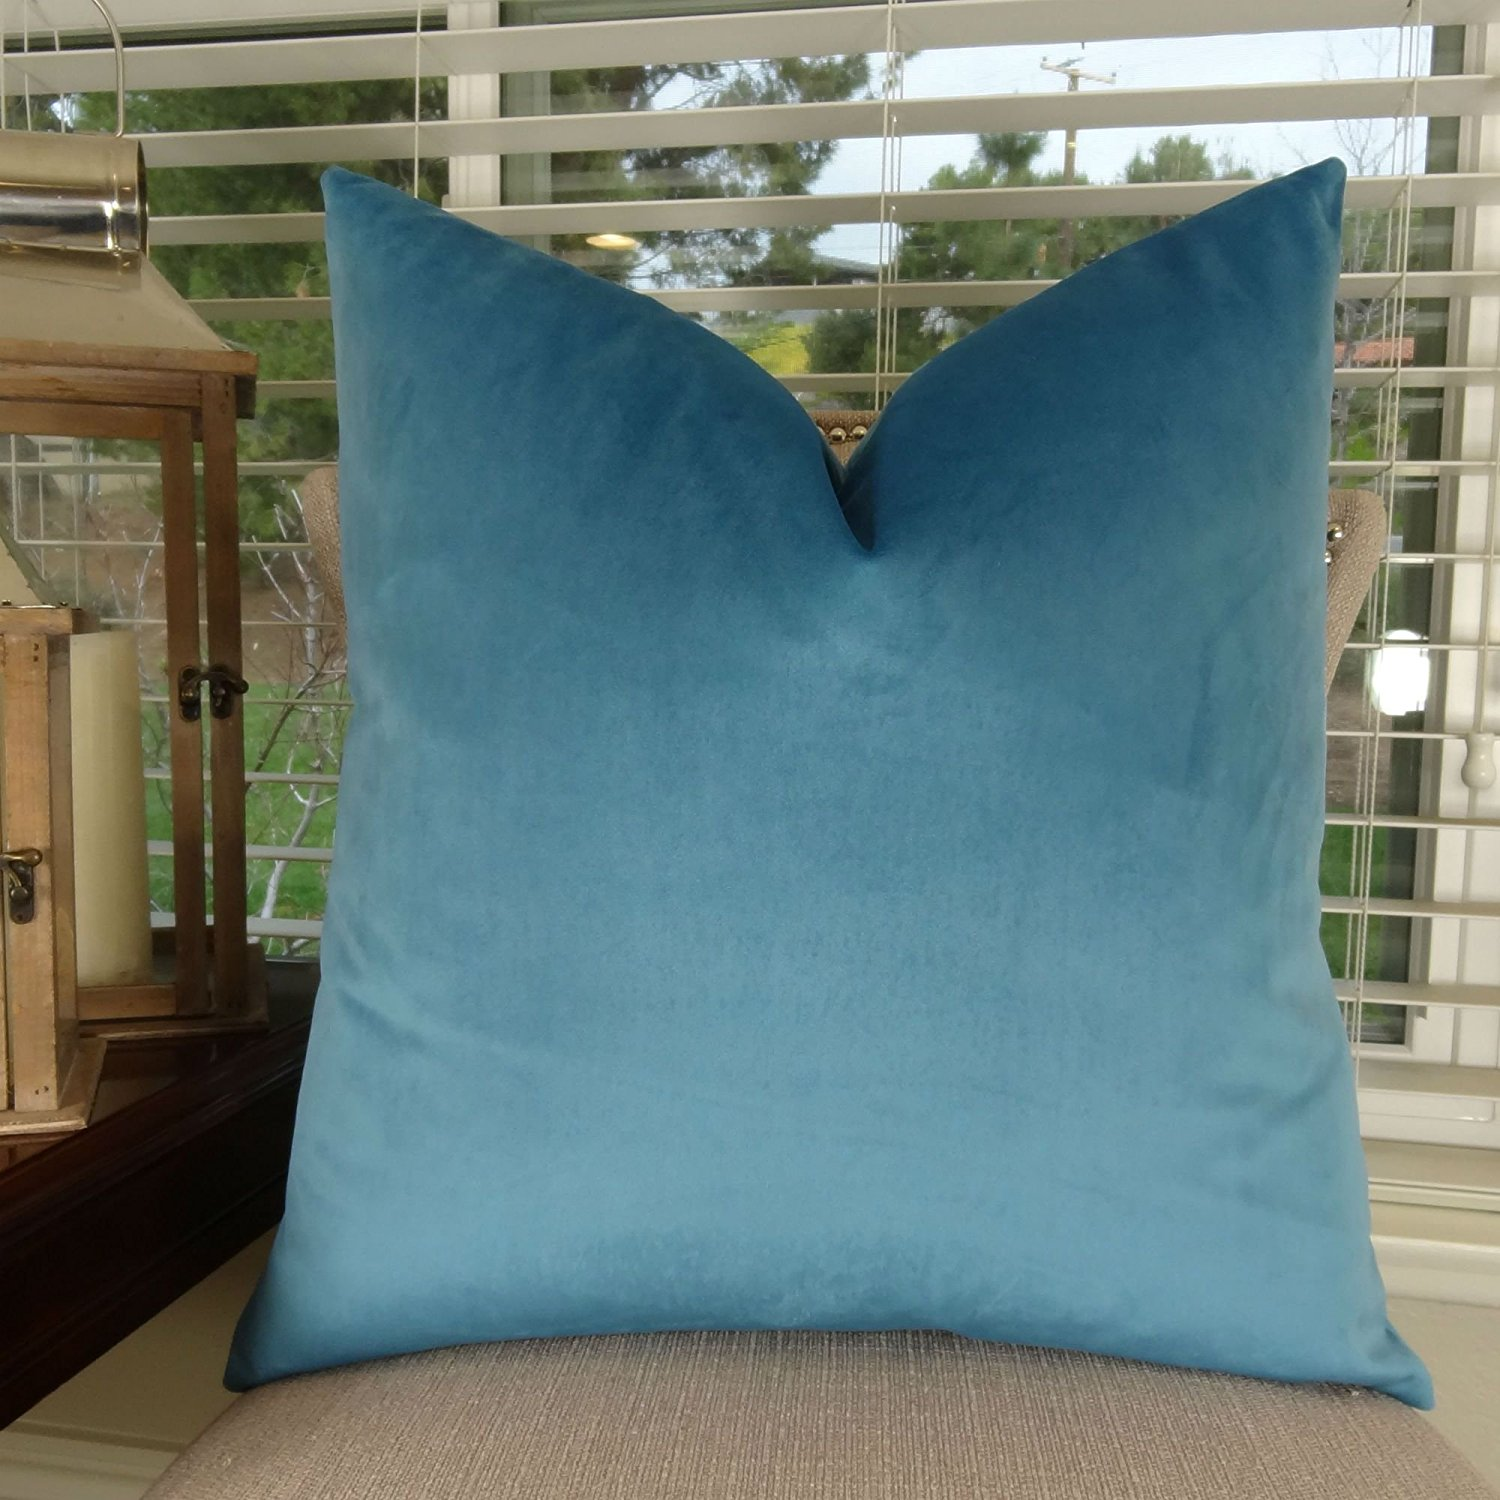 Get Quotations Thomas Collection Luxury Teal Throw Pillow For Couch Pea Blue Sofa Dark Turquoise